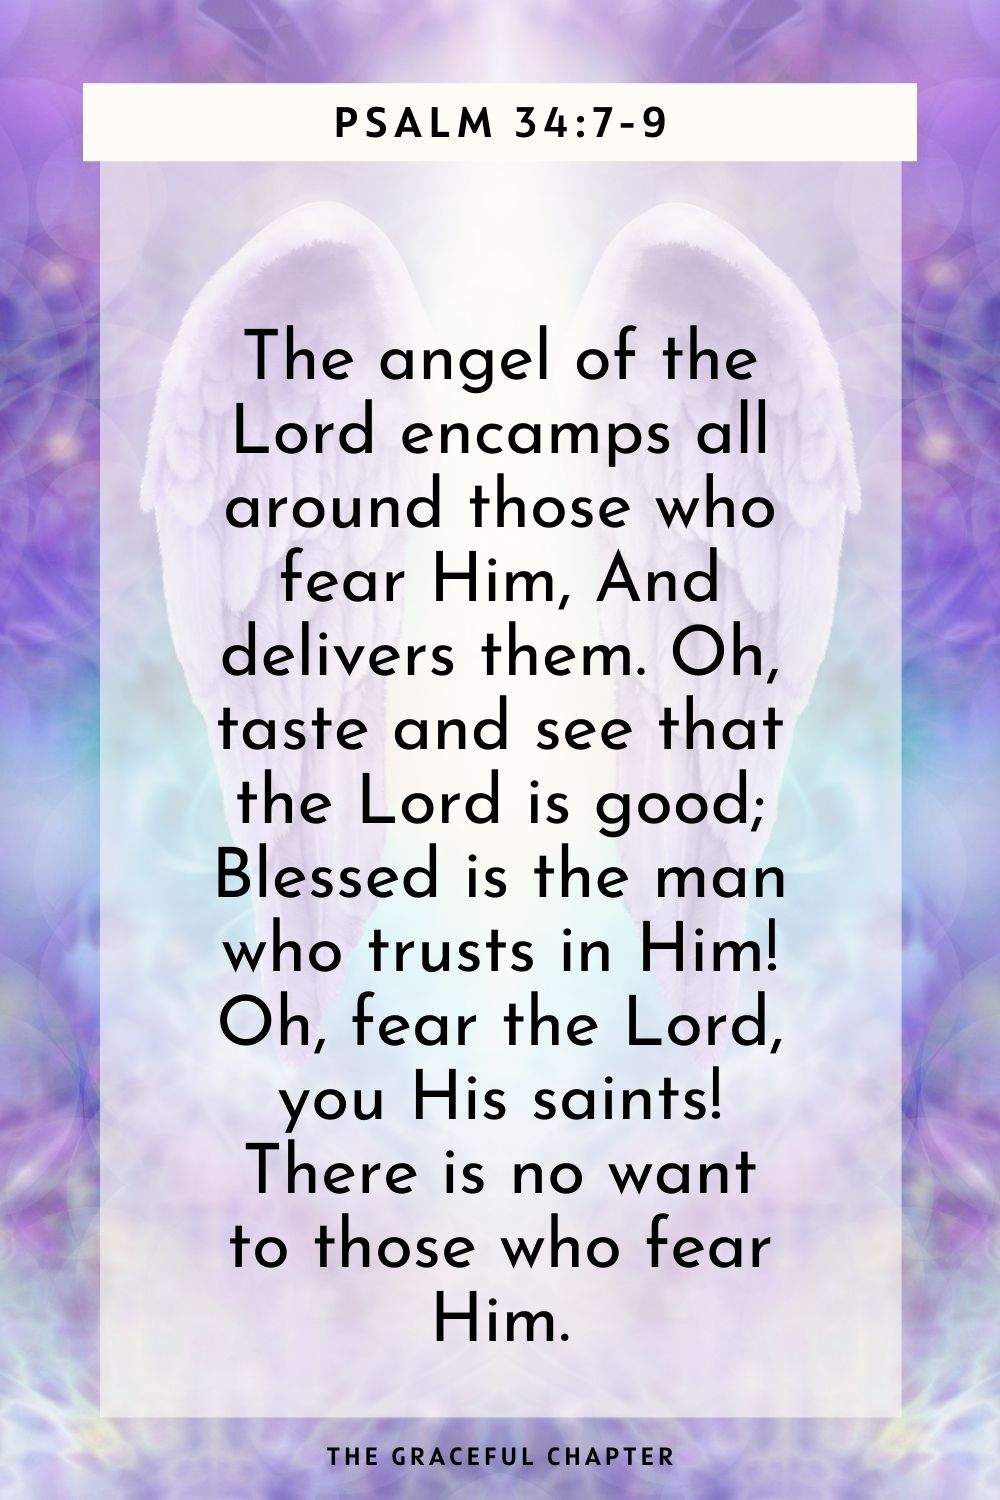 Oh, fear the Lord, you His saints! There is no want to those who fear Him. Psalm 34:7-9